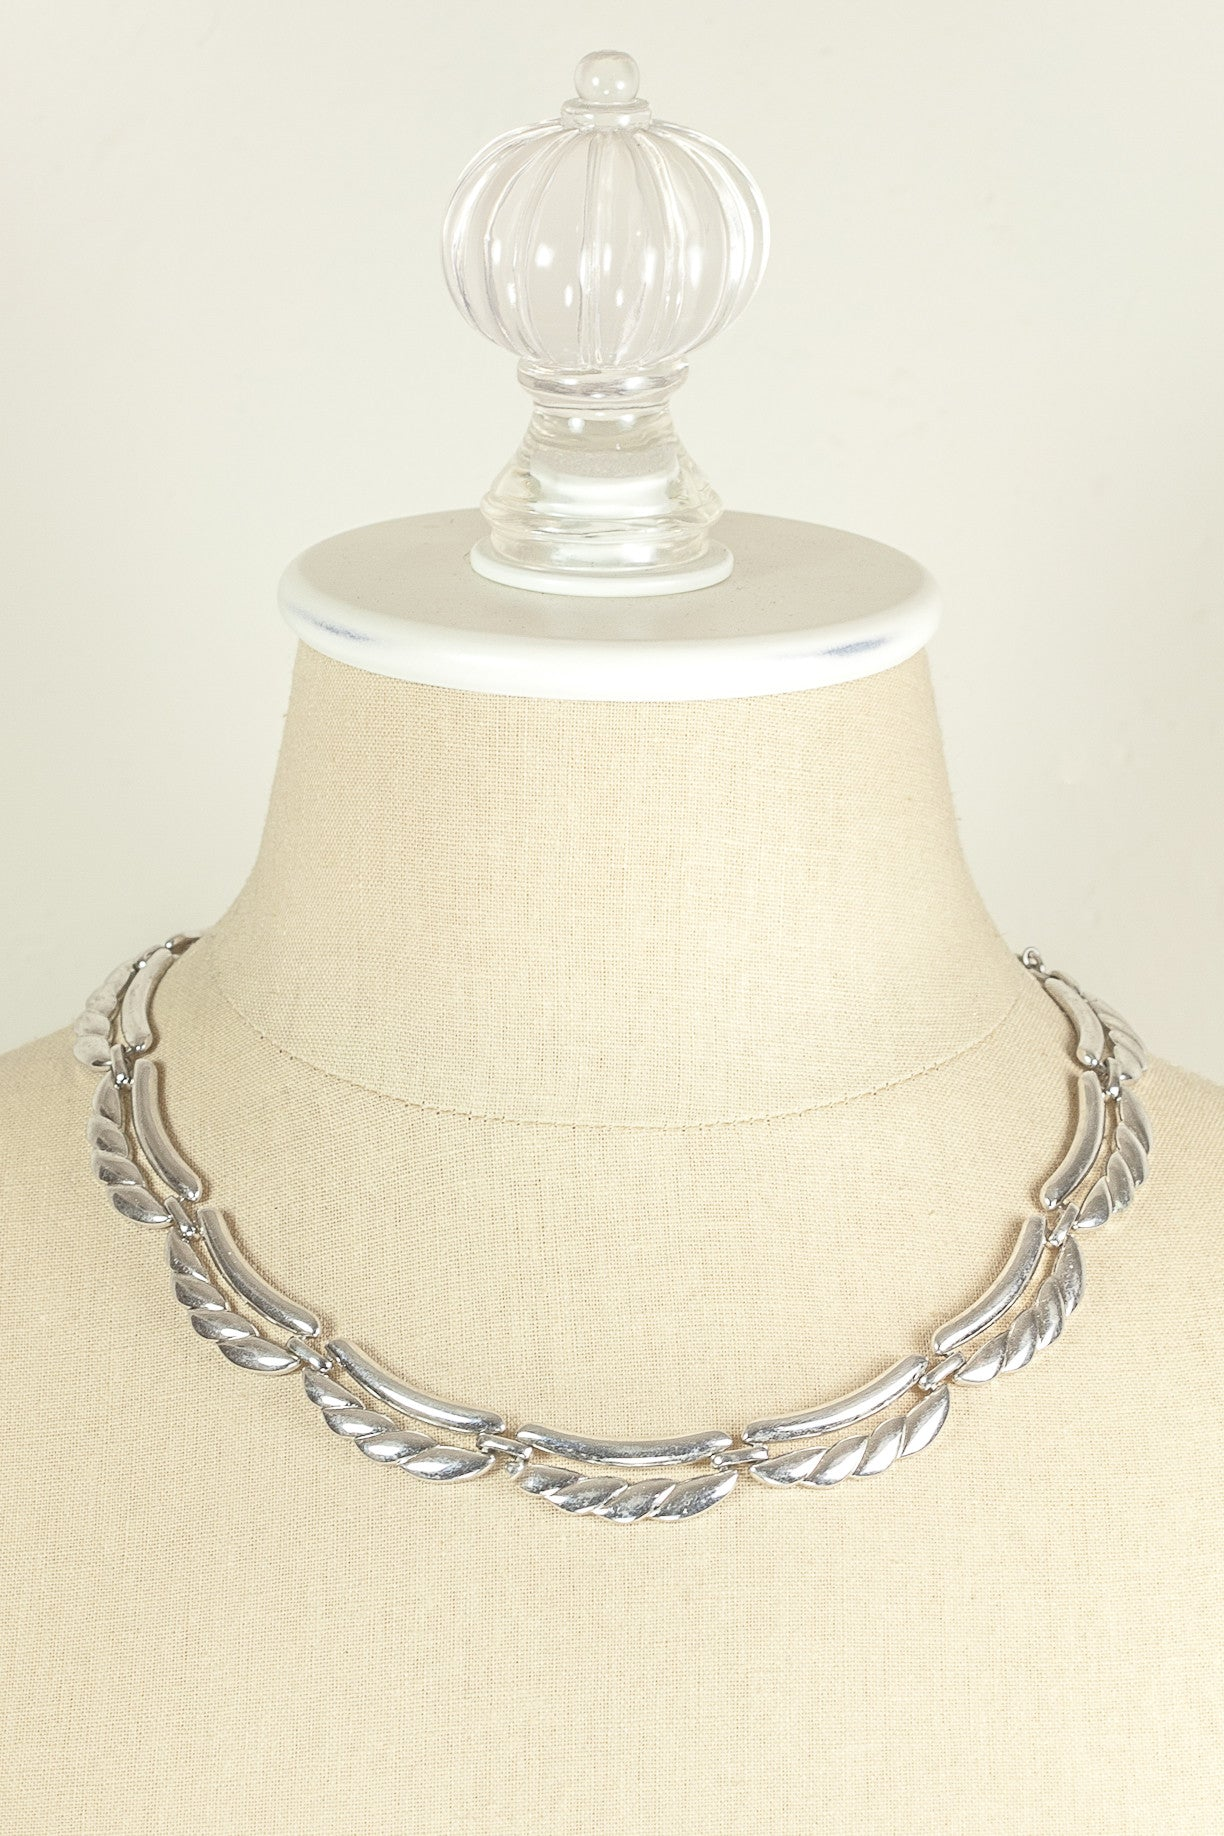 70's__Monet__Silver Scallop Necklace